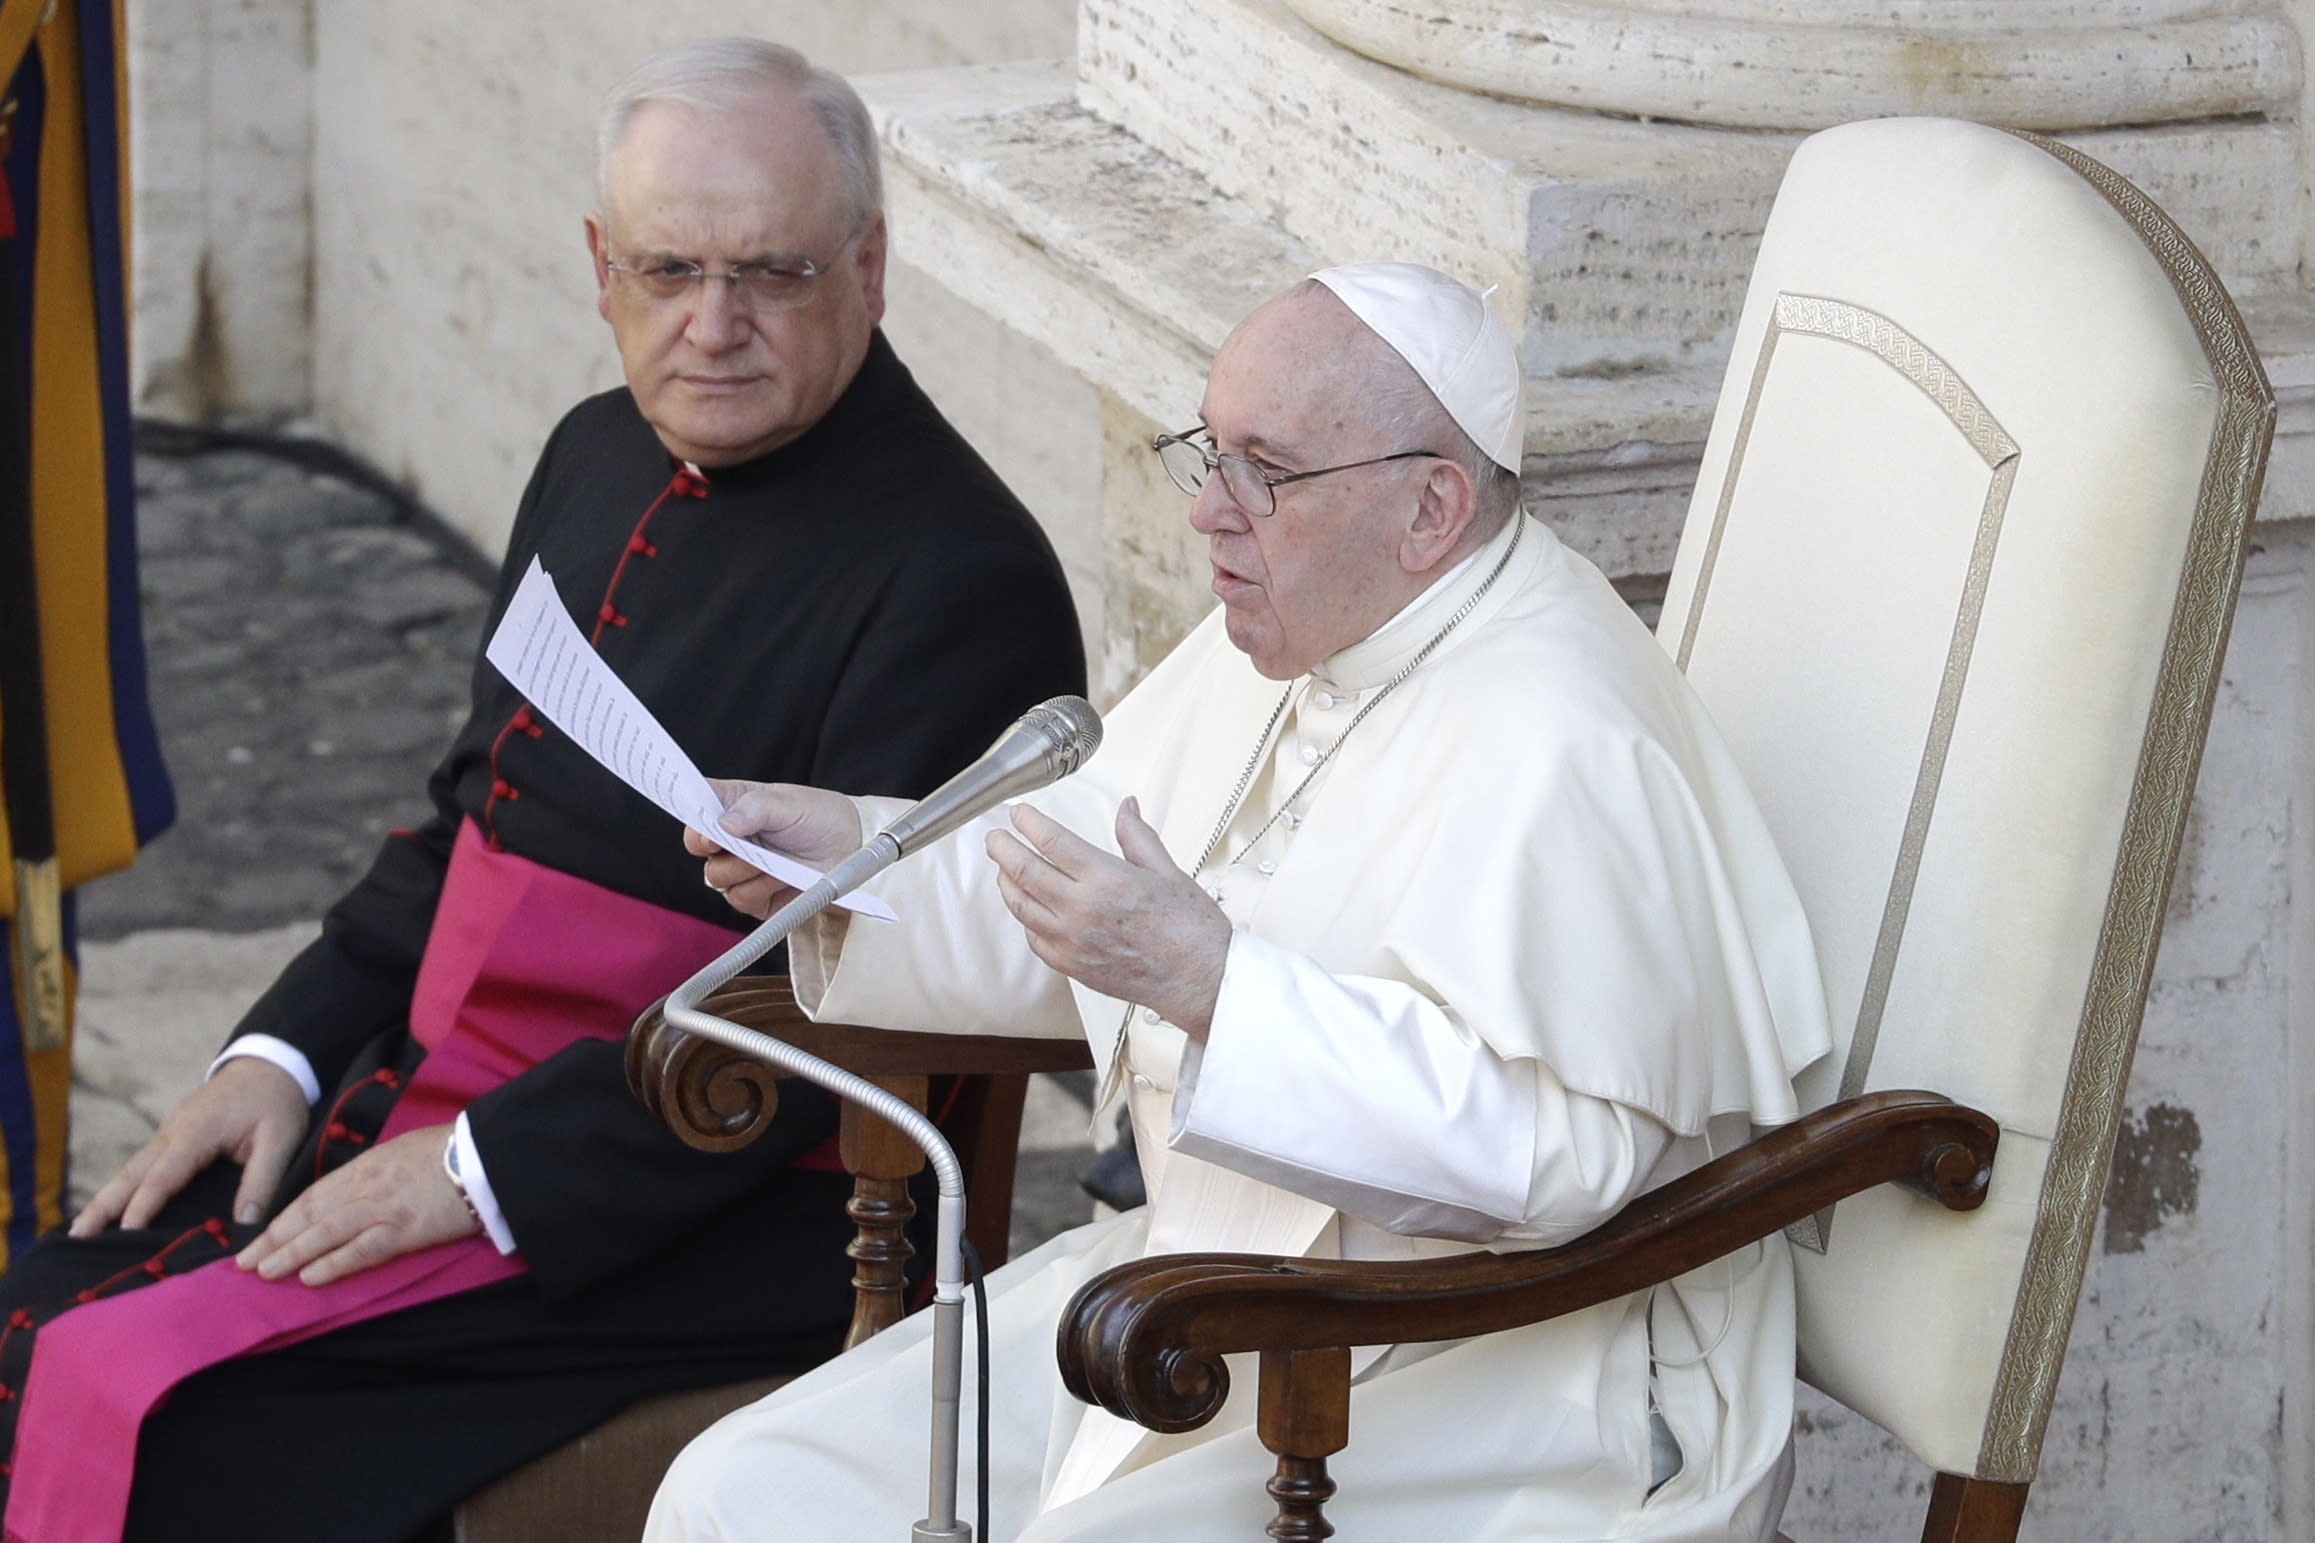 Pope Francis delivers his message in the St. Damaso courtyard on the occasion of his weekly general audience at the Vatican, Wednesday, Sept. 16, 2020. (AP Photo/Gregorio Borgia)